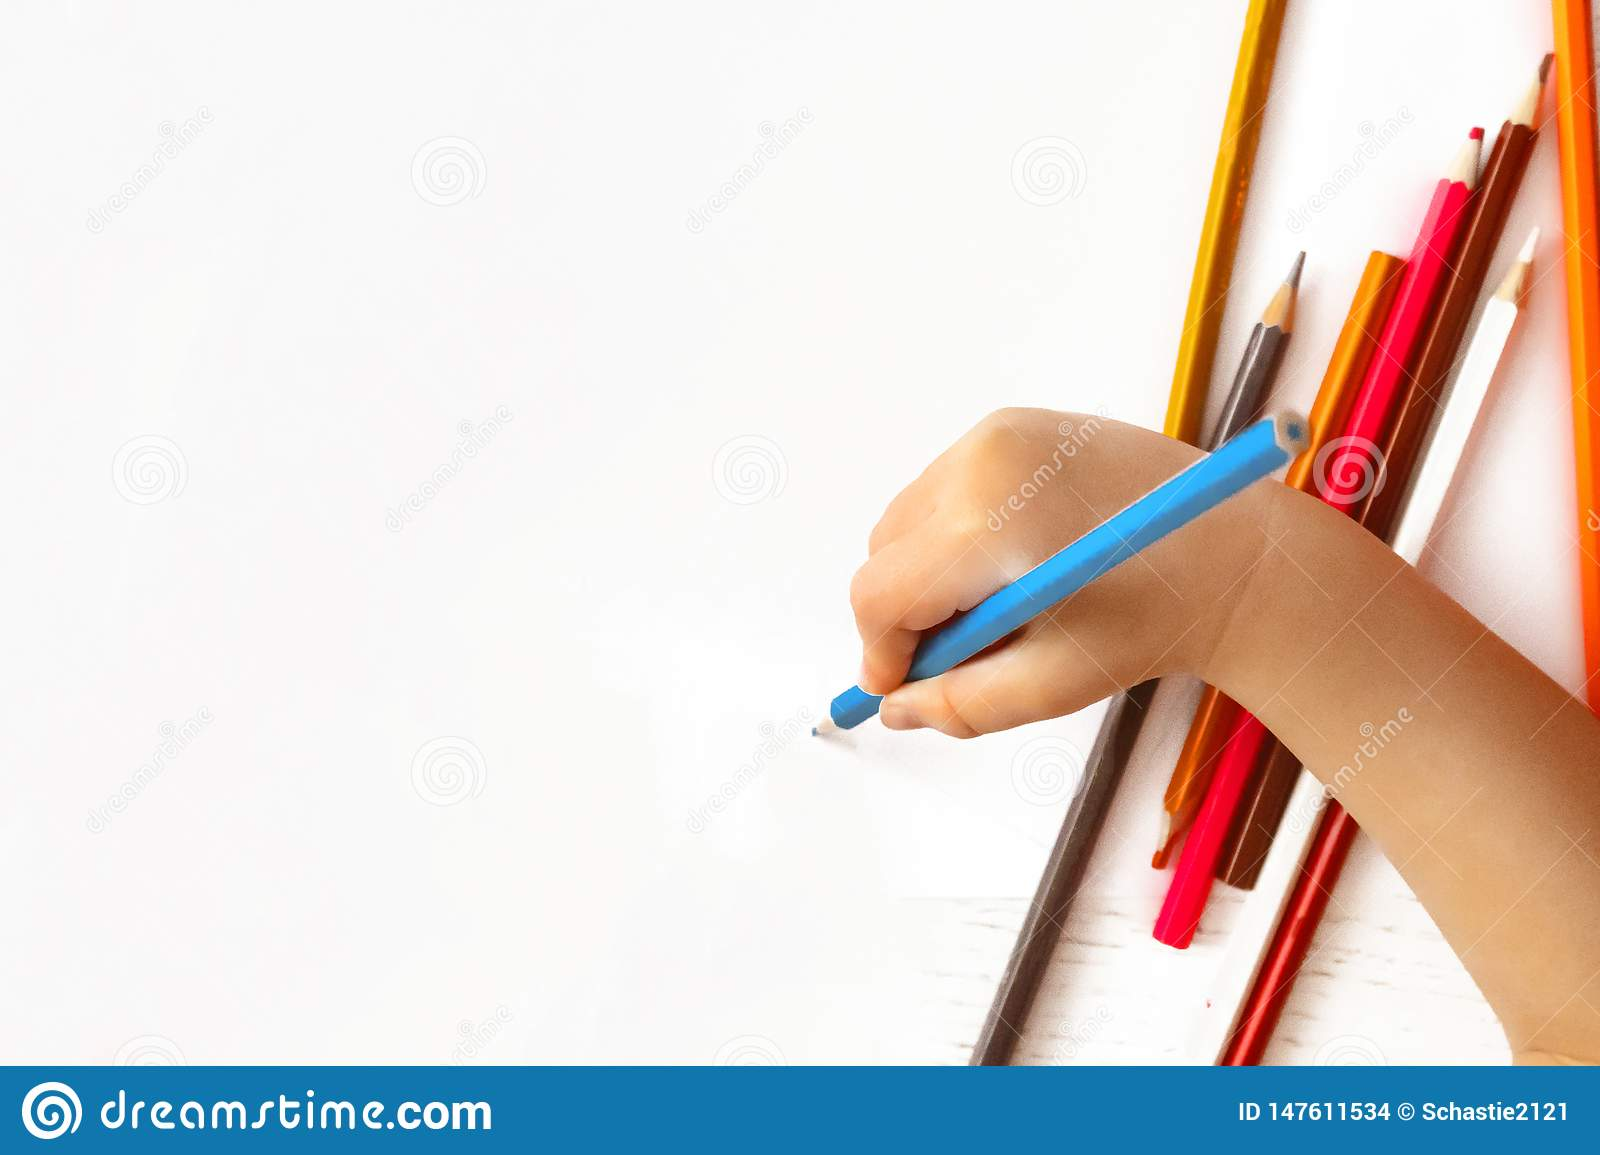 Children`s hand draws a pencil on white paper.